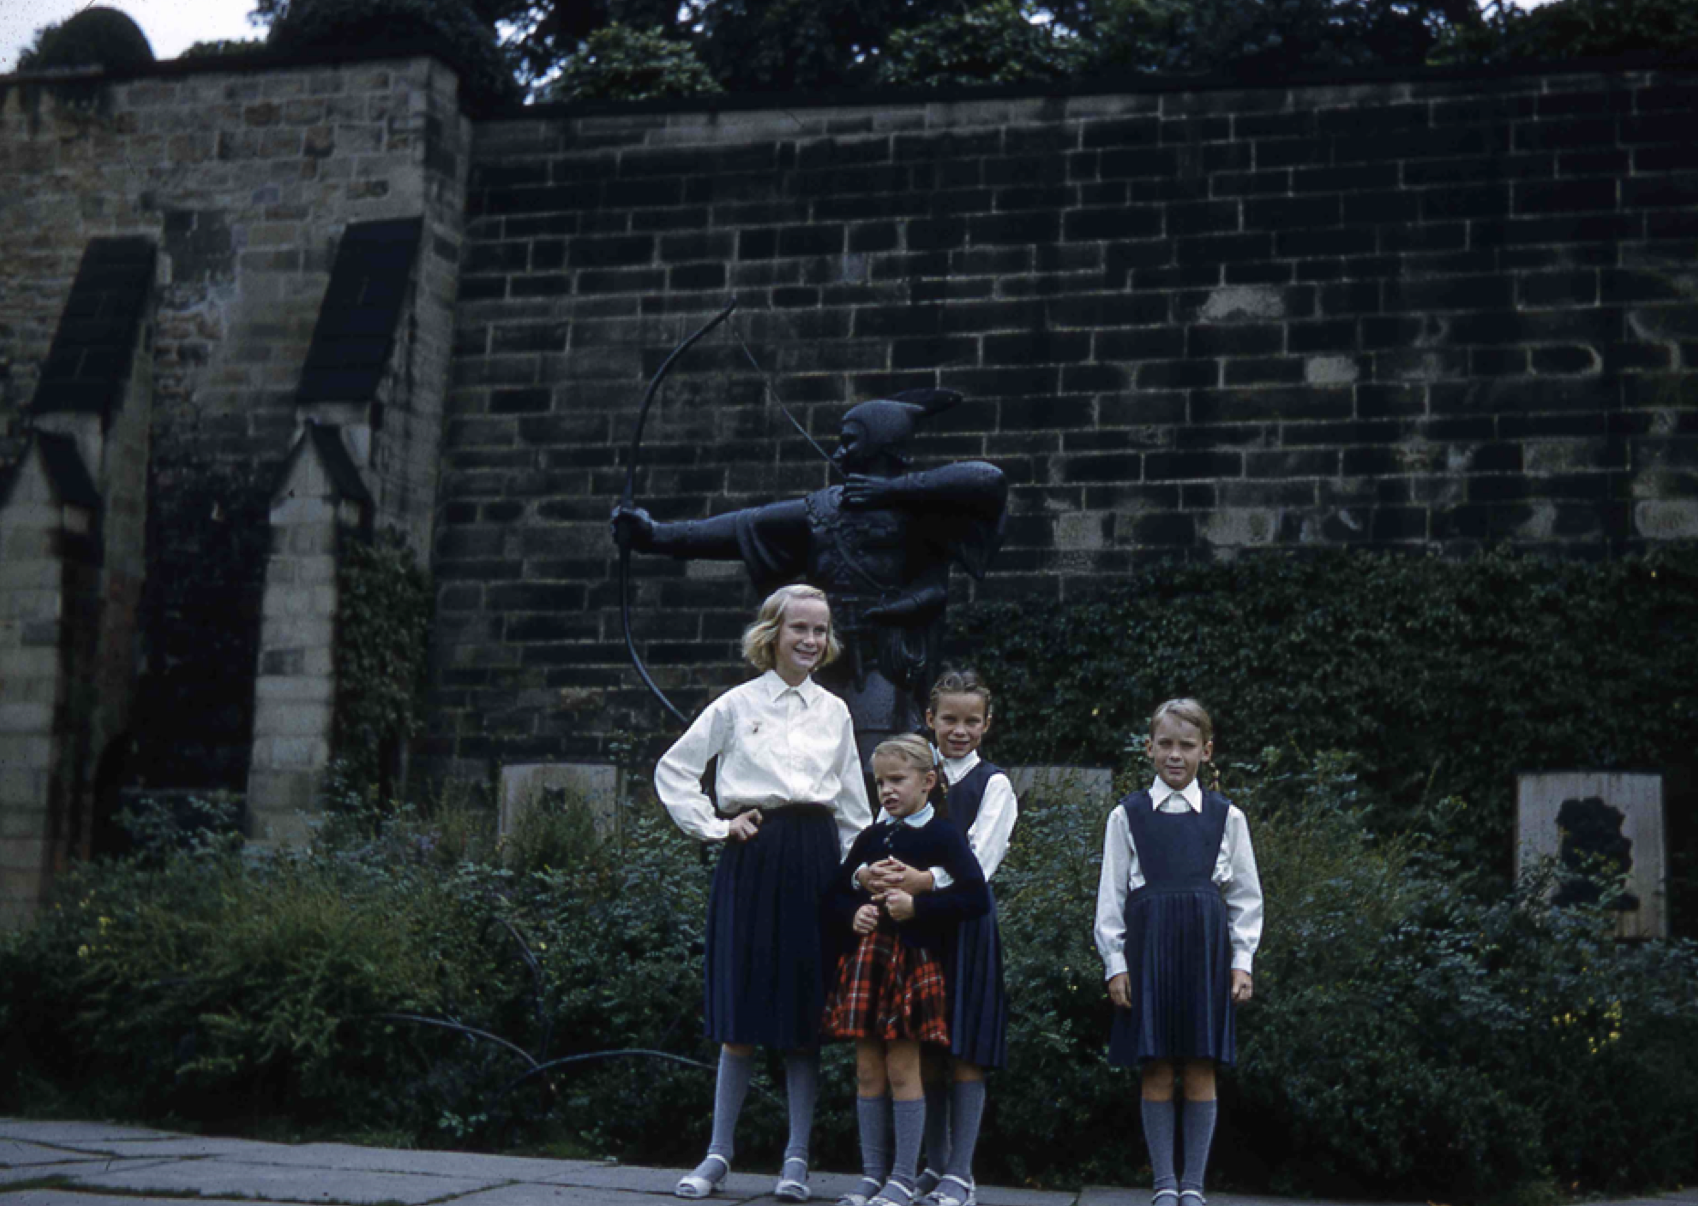 Here is a picture of us in England.  My three older sisters are in their boarding school uniforms.  Barbara is the tall one on the left. Donna and I are in the middle. Kathy is in the right.